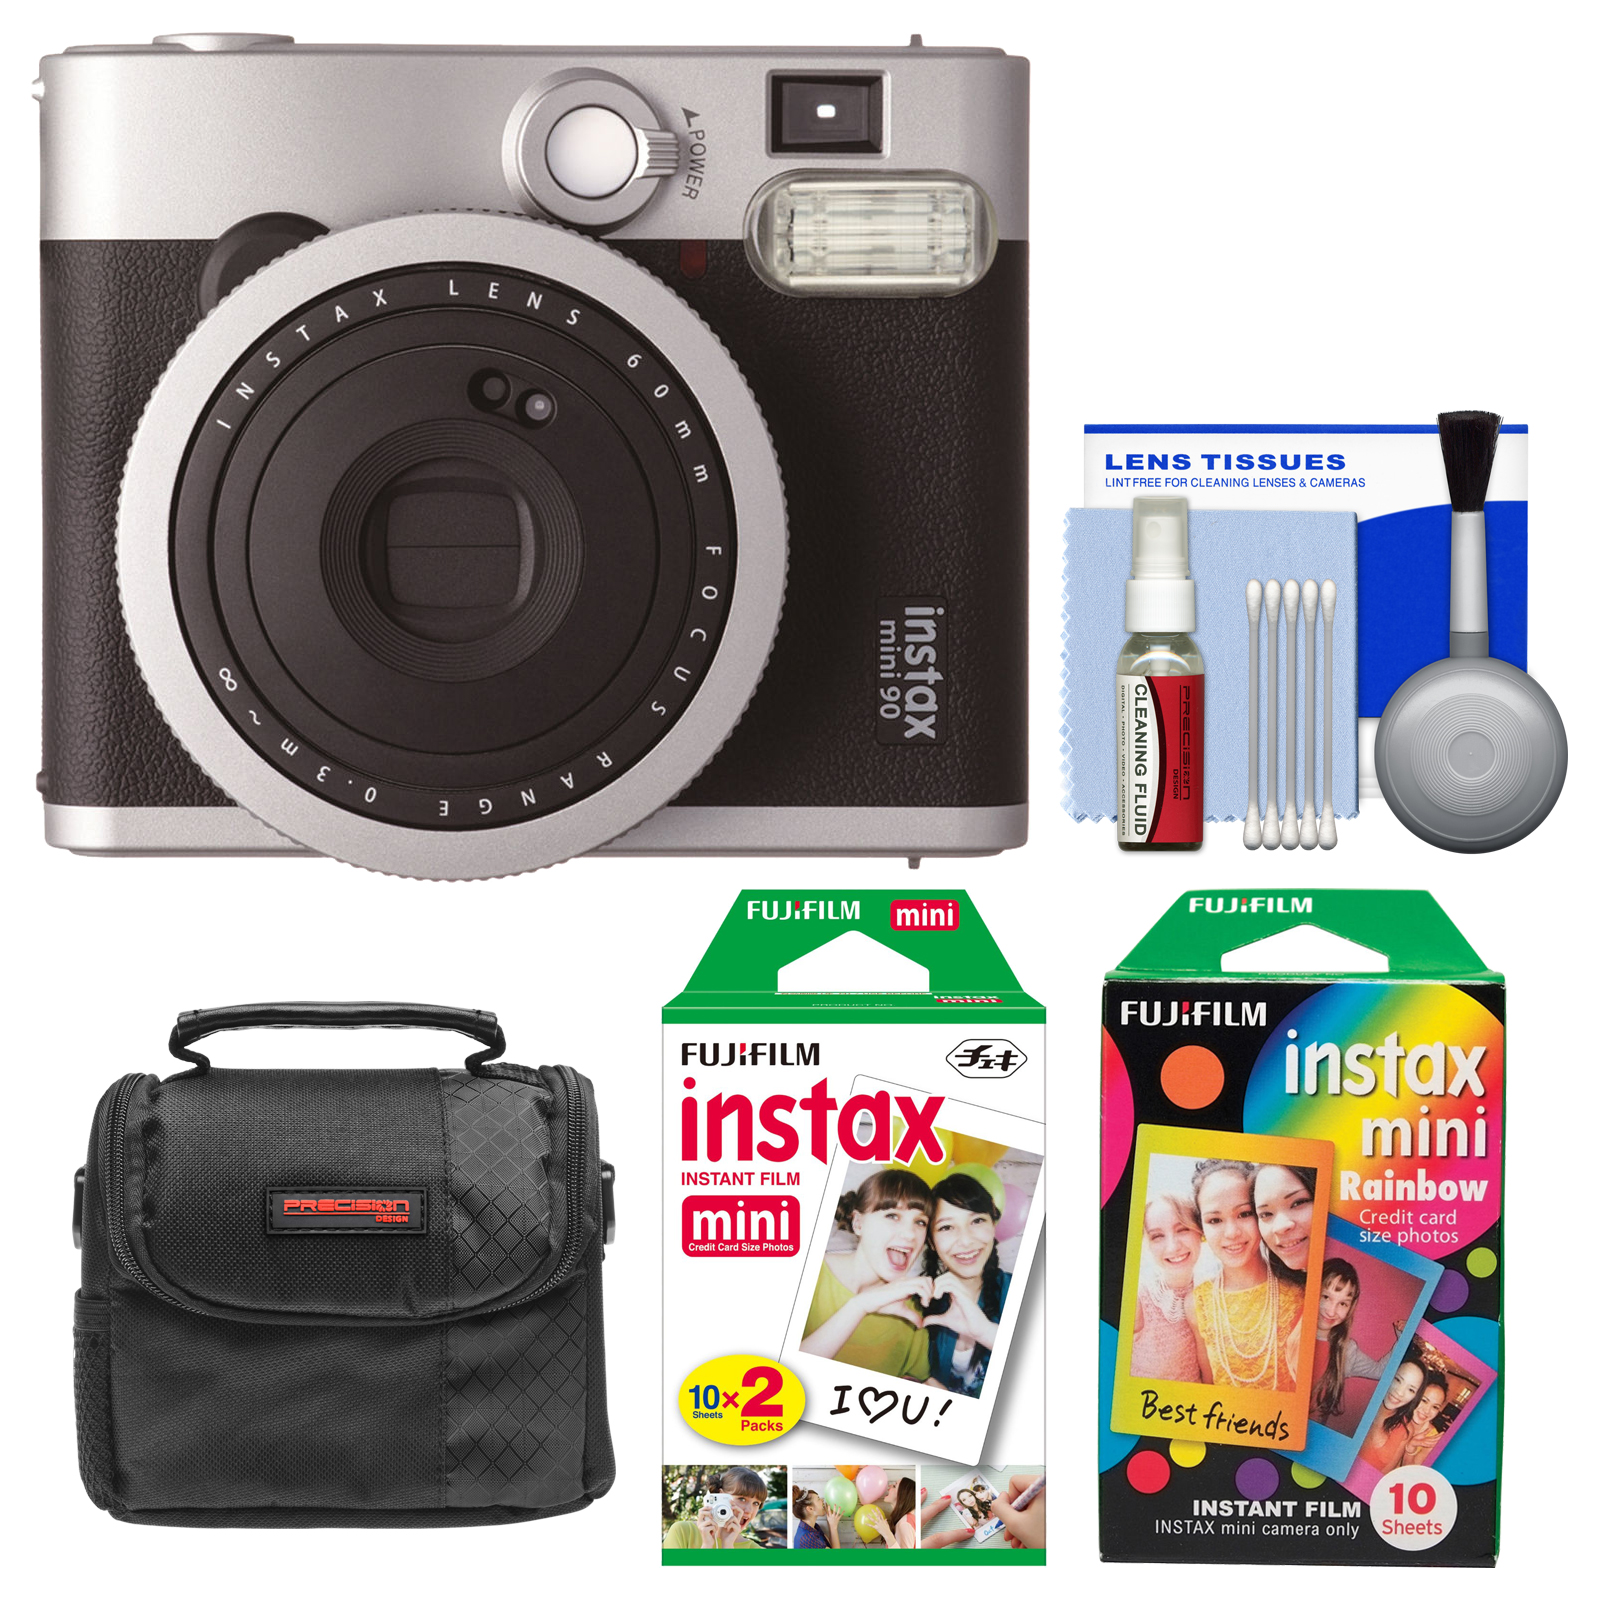 FujiFilm Instax Mini 90 Neo Classic Instant Film Camera with Instant & Rainbow Film Packs + Case + Kit by Fujifilm